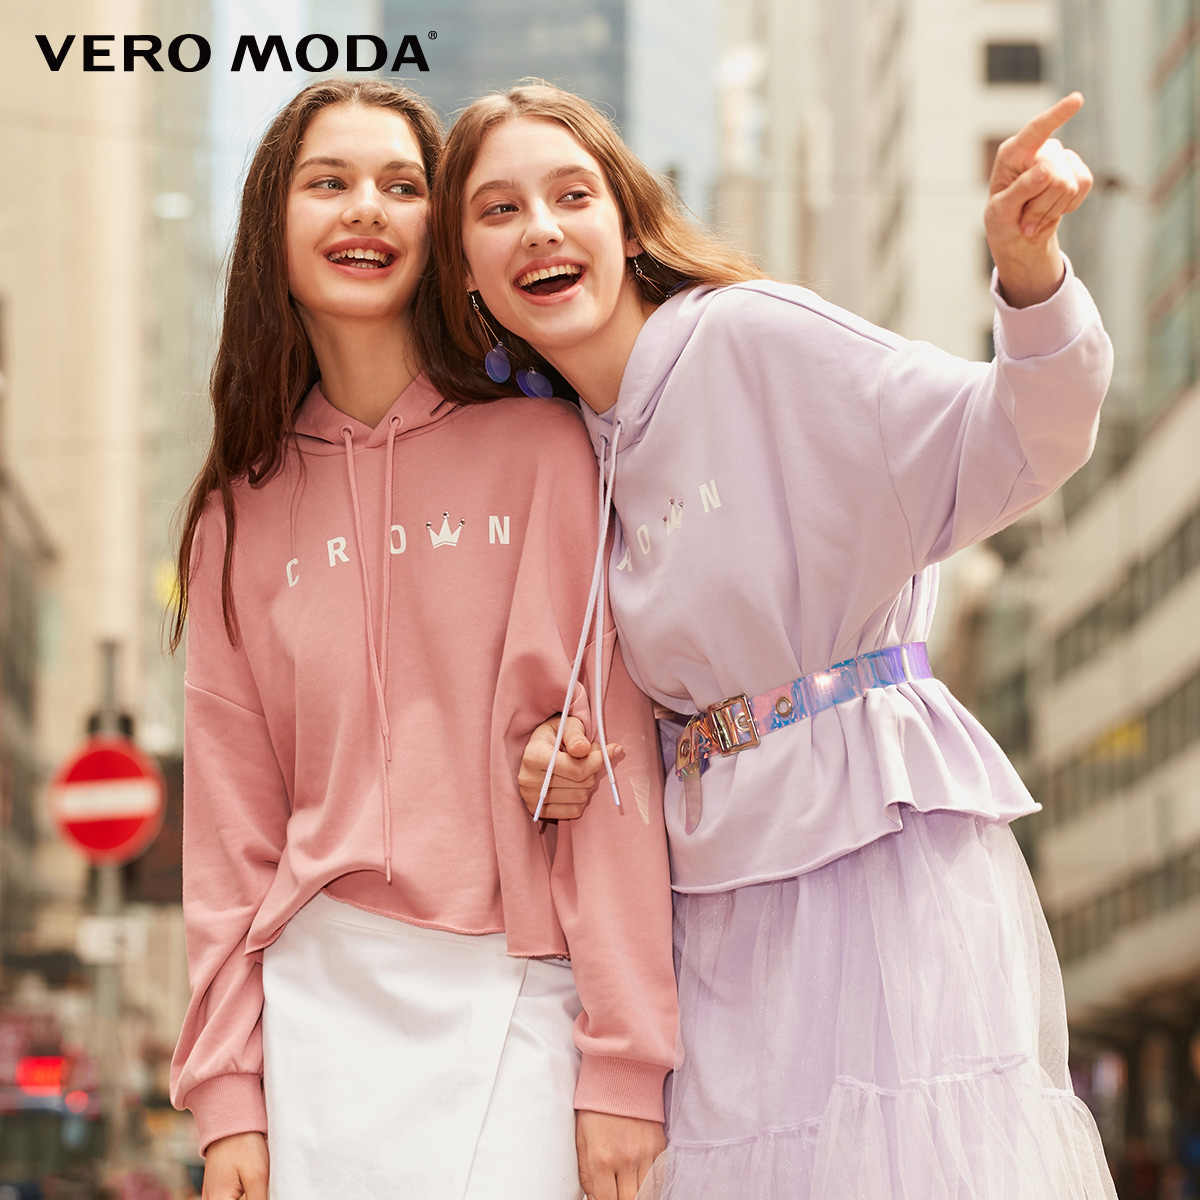 Vero Moda 2019 New Women's Letter Print Rhinestones Ribbed Cuffs Loose Fit Pure Hoodie | 319133511